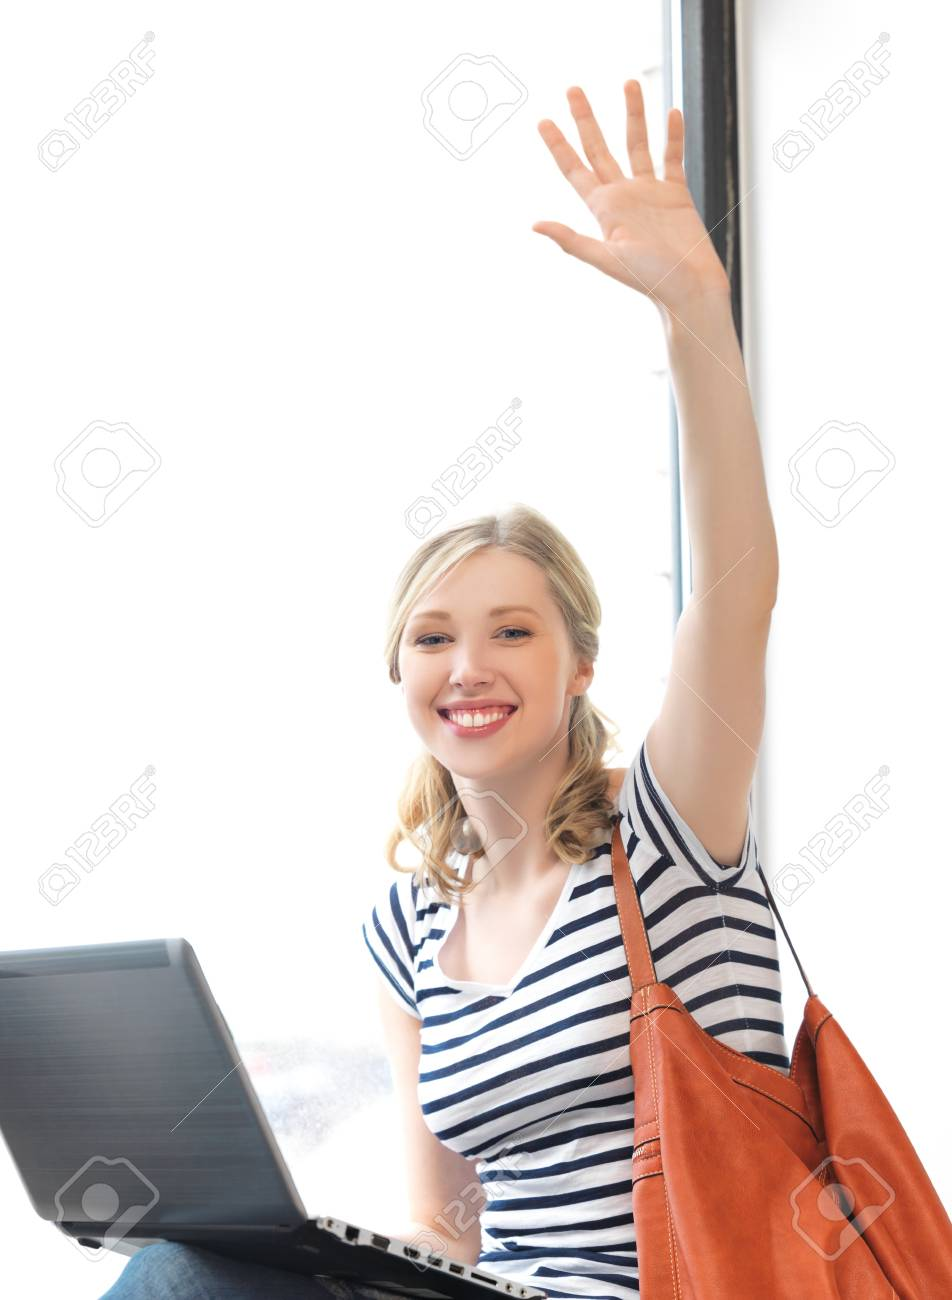 happy teenage girl waving a greeting with laptop Stock Photo - 14529509